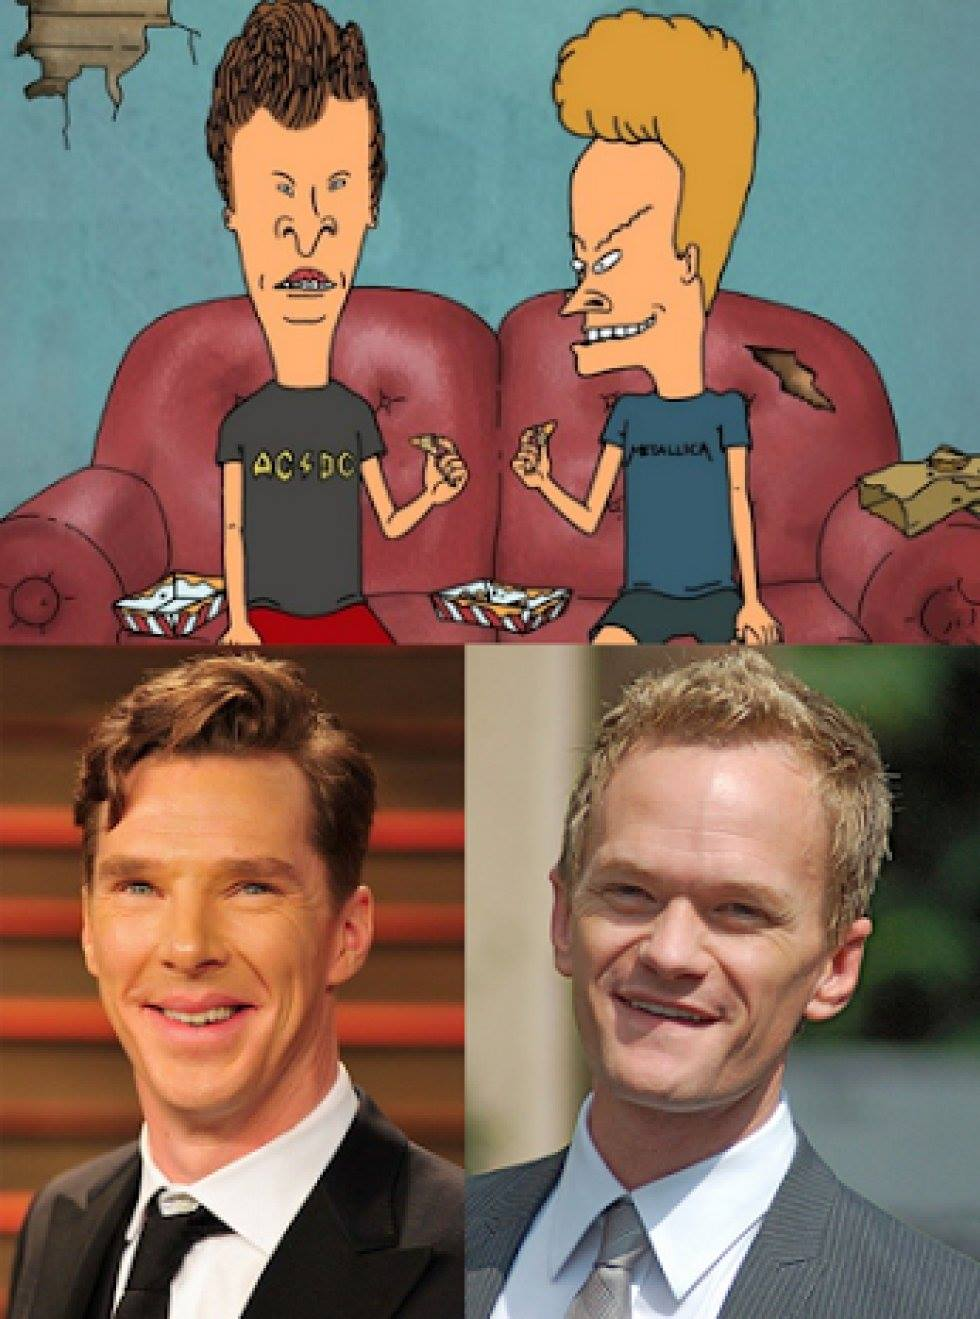 benedict cumberbatch and neil patrick harris totallylookslike beavis and butthead